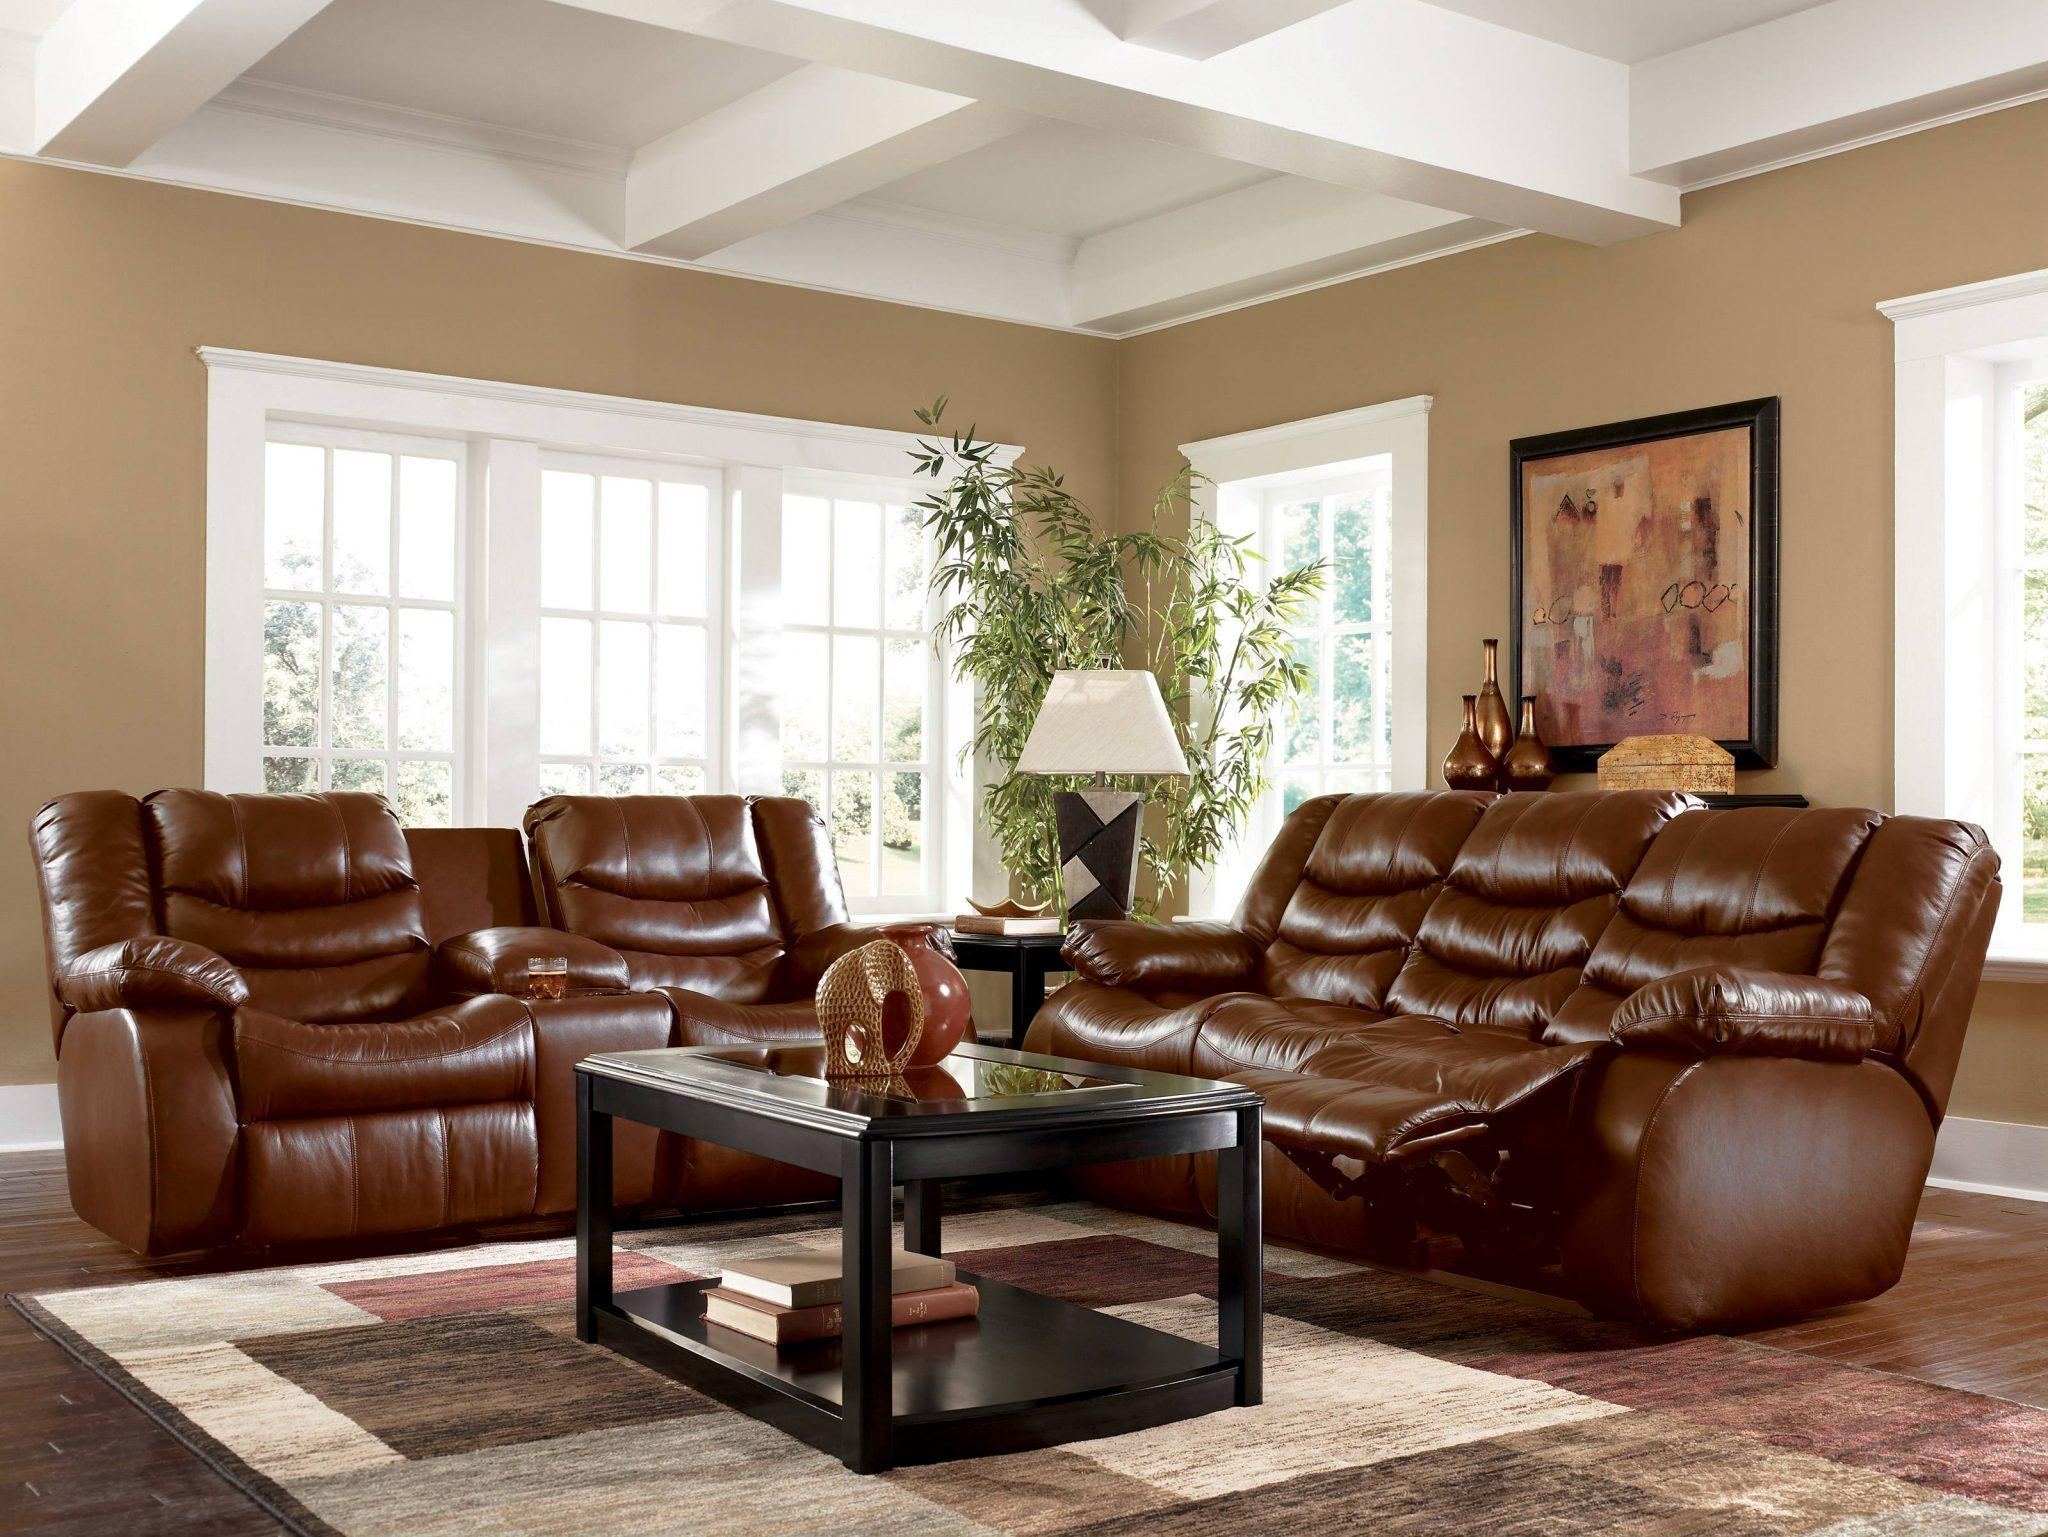 Living Room Ideas With Brown Sofas – Theydesign – Theydesign Intended For Living Room With Brown Sofas (Image 15 of 20)